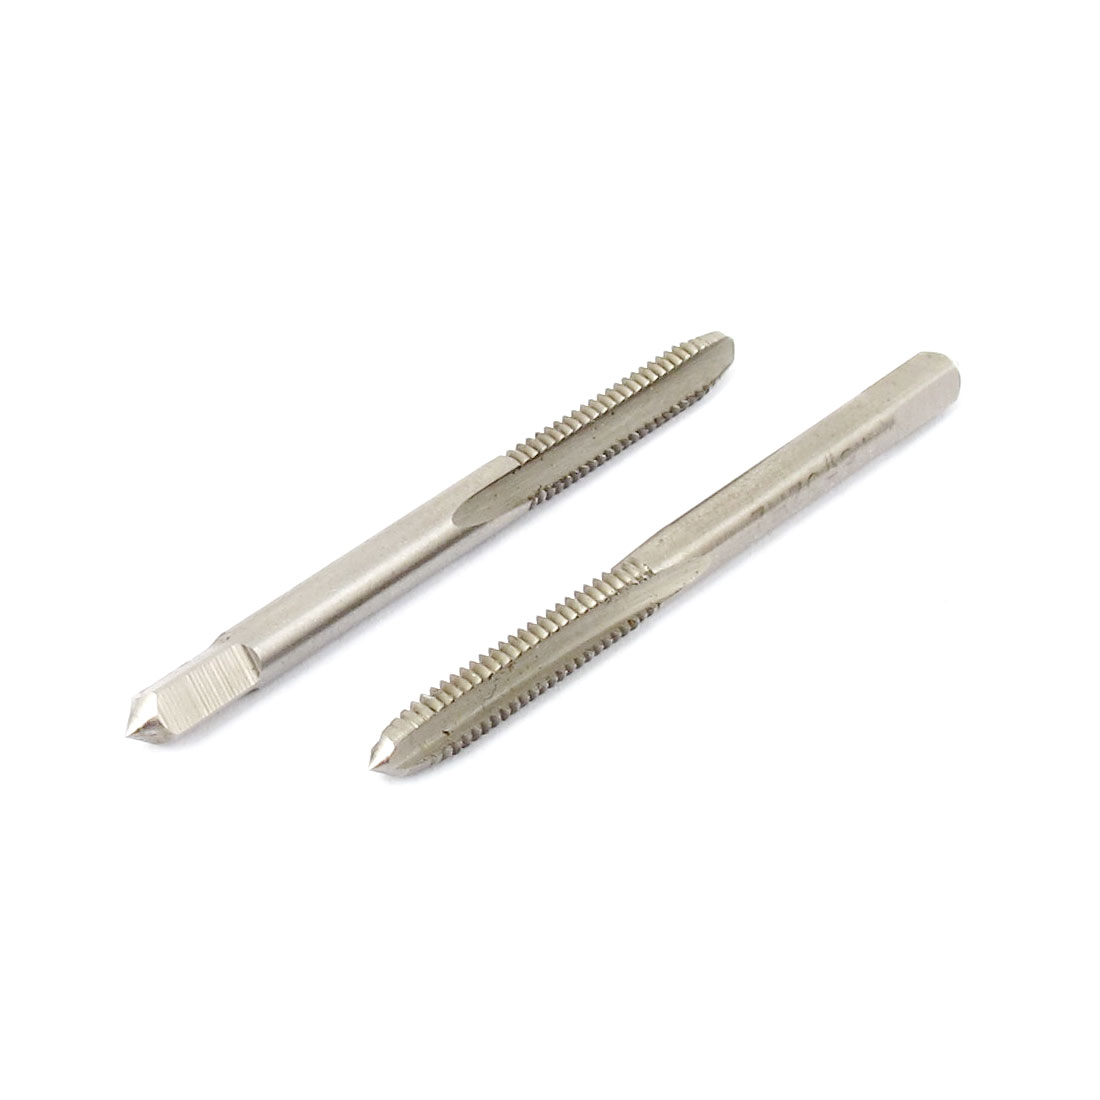 2pcs 4mm Flute Diameter HSS Screw Thread Metric Taper Tap 8-32UNC